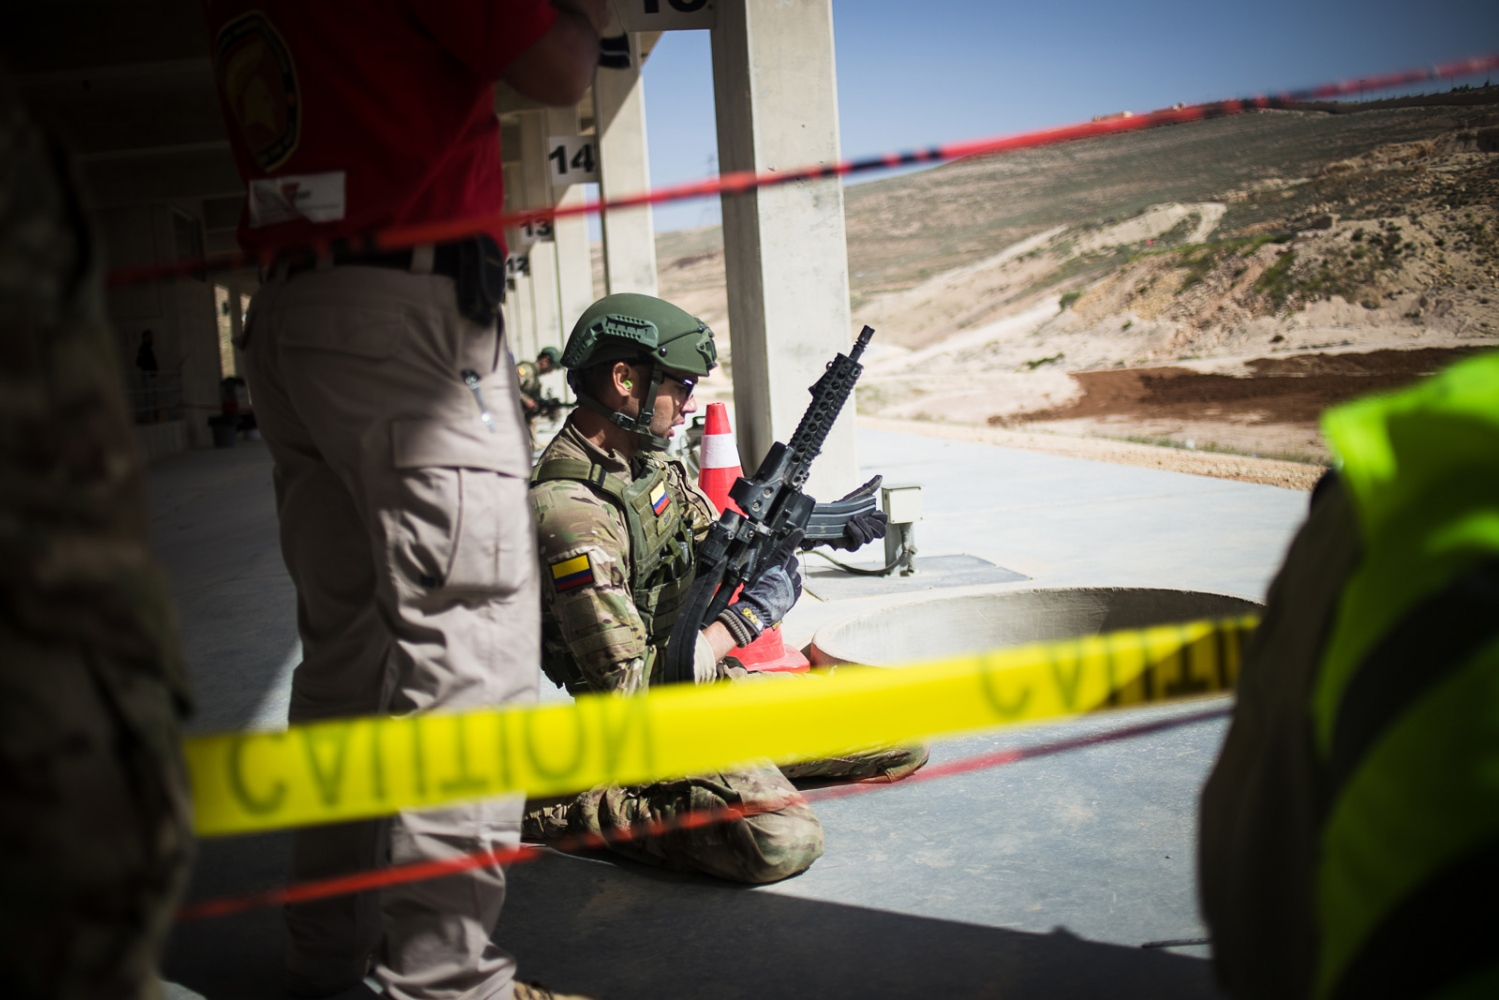 The Colombia team participates in the desert stress shoot event in the seventh annual Warrior Competition at the King Abdullah II Special Operations Training Center near Amman, Jordan, on April 21, 2015.